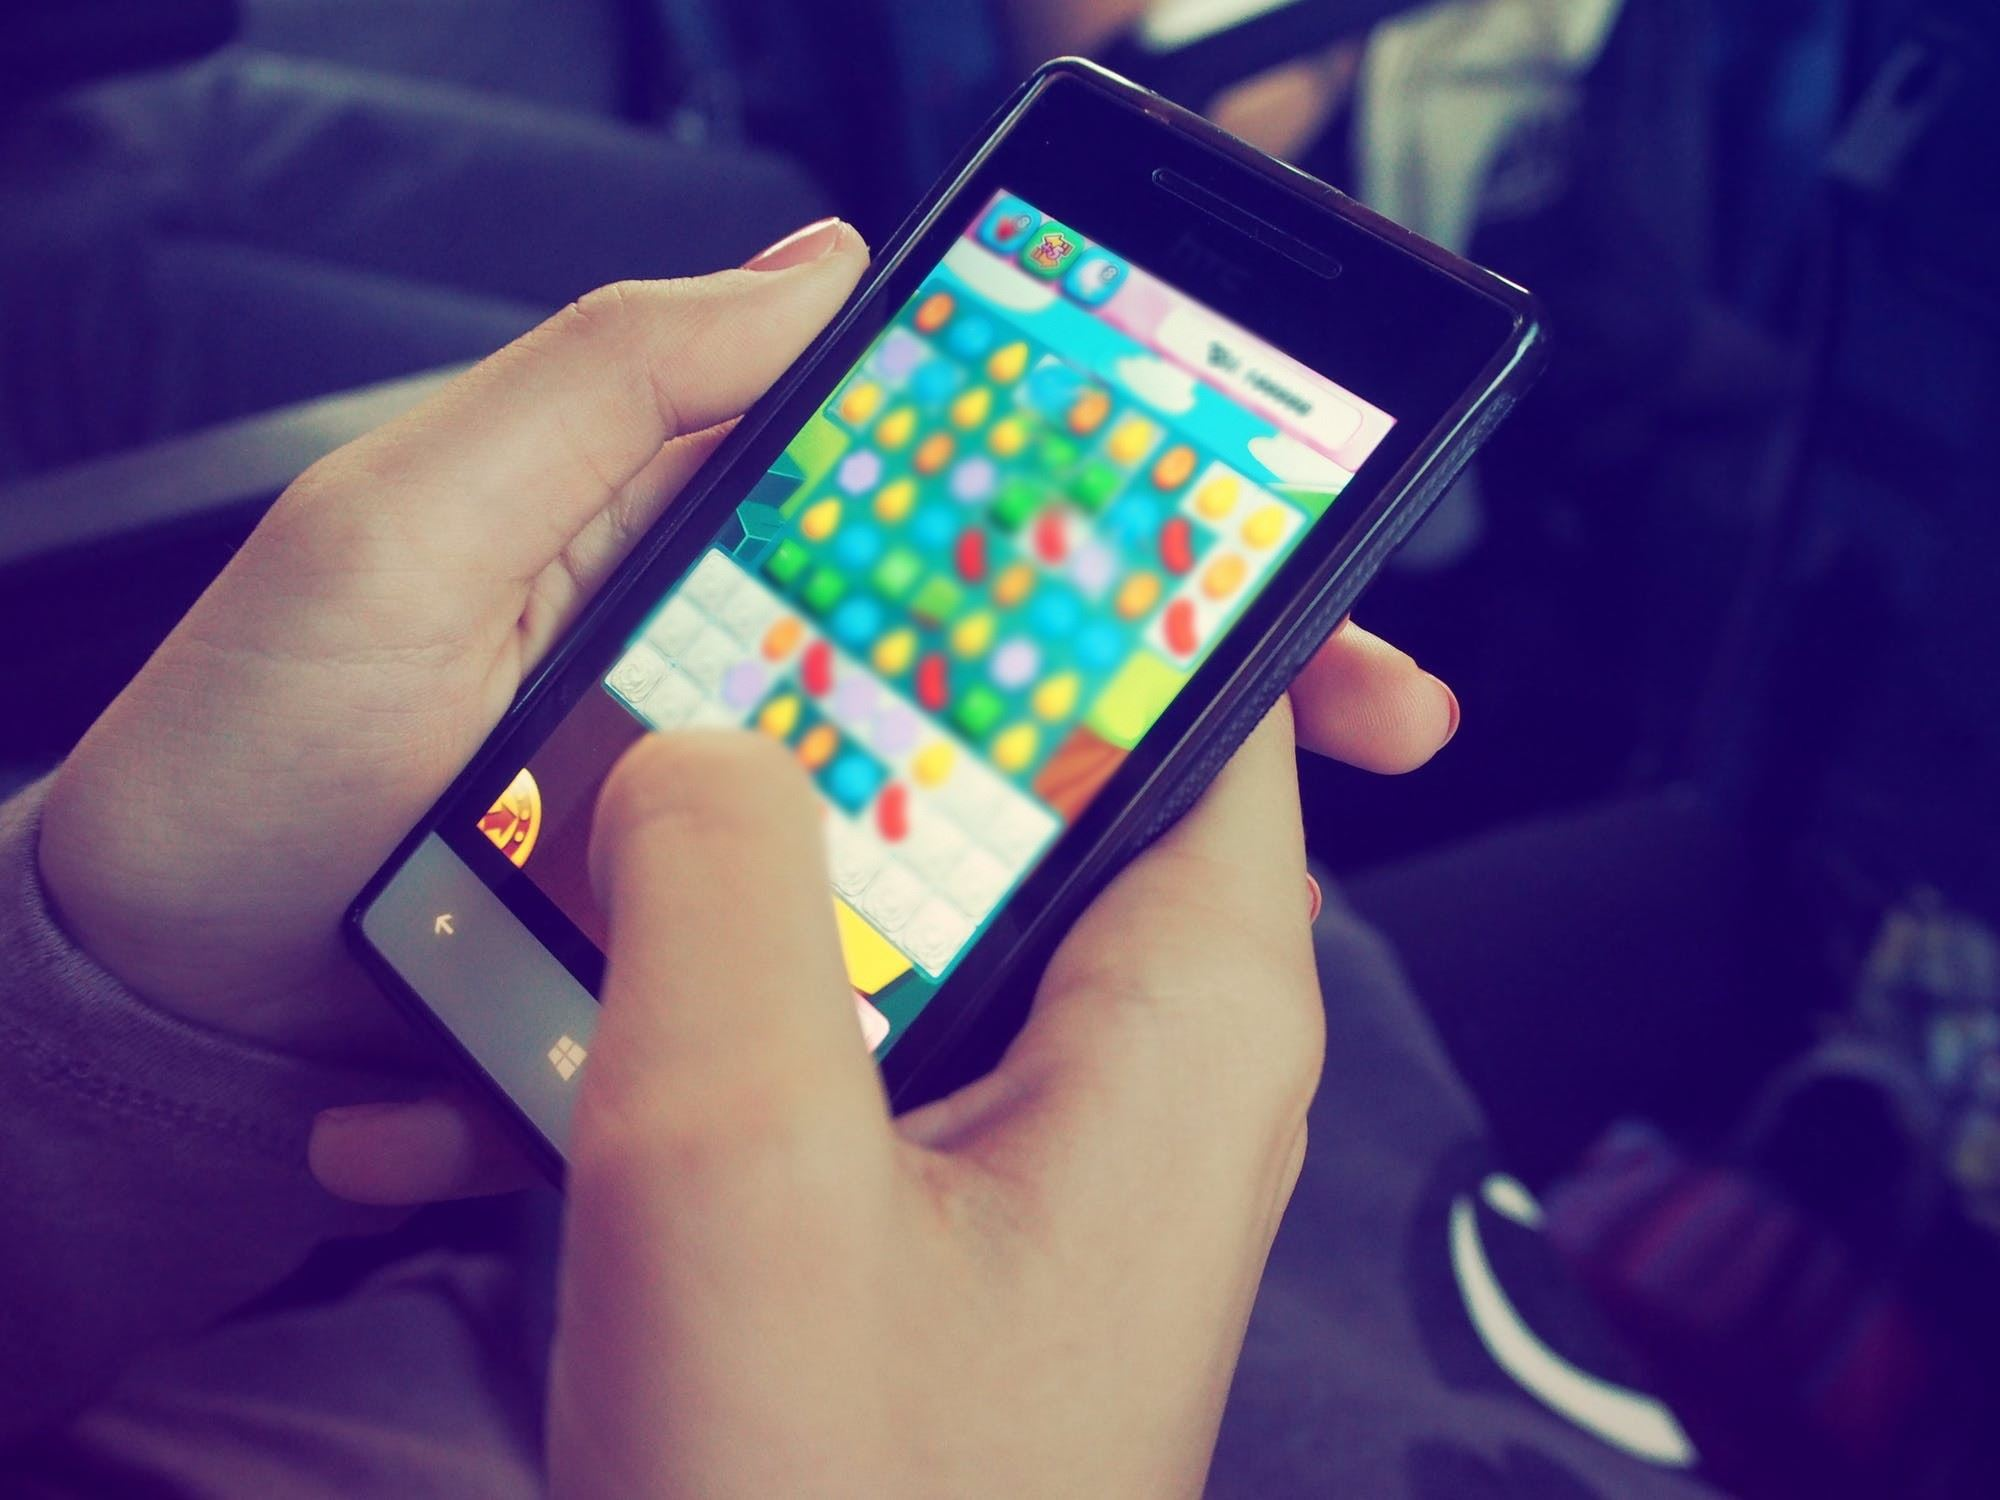 filipino boy accidentally spends rm8,411 on mobile games